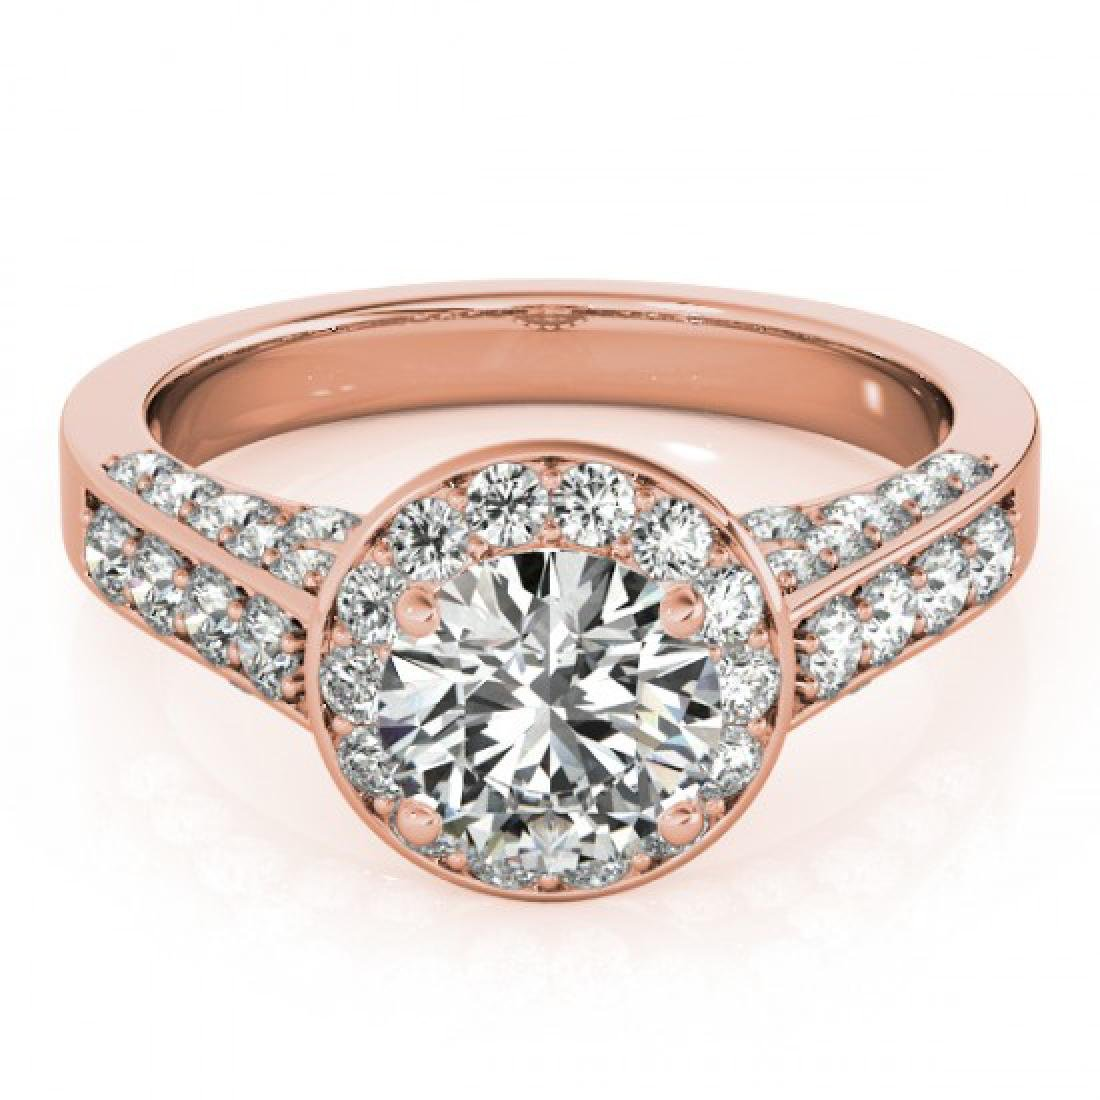 1.8 CTW Certified VS/SI Diamond Solitaire Halo Ring 18K